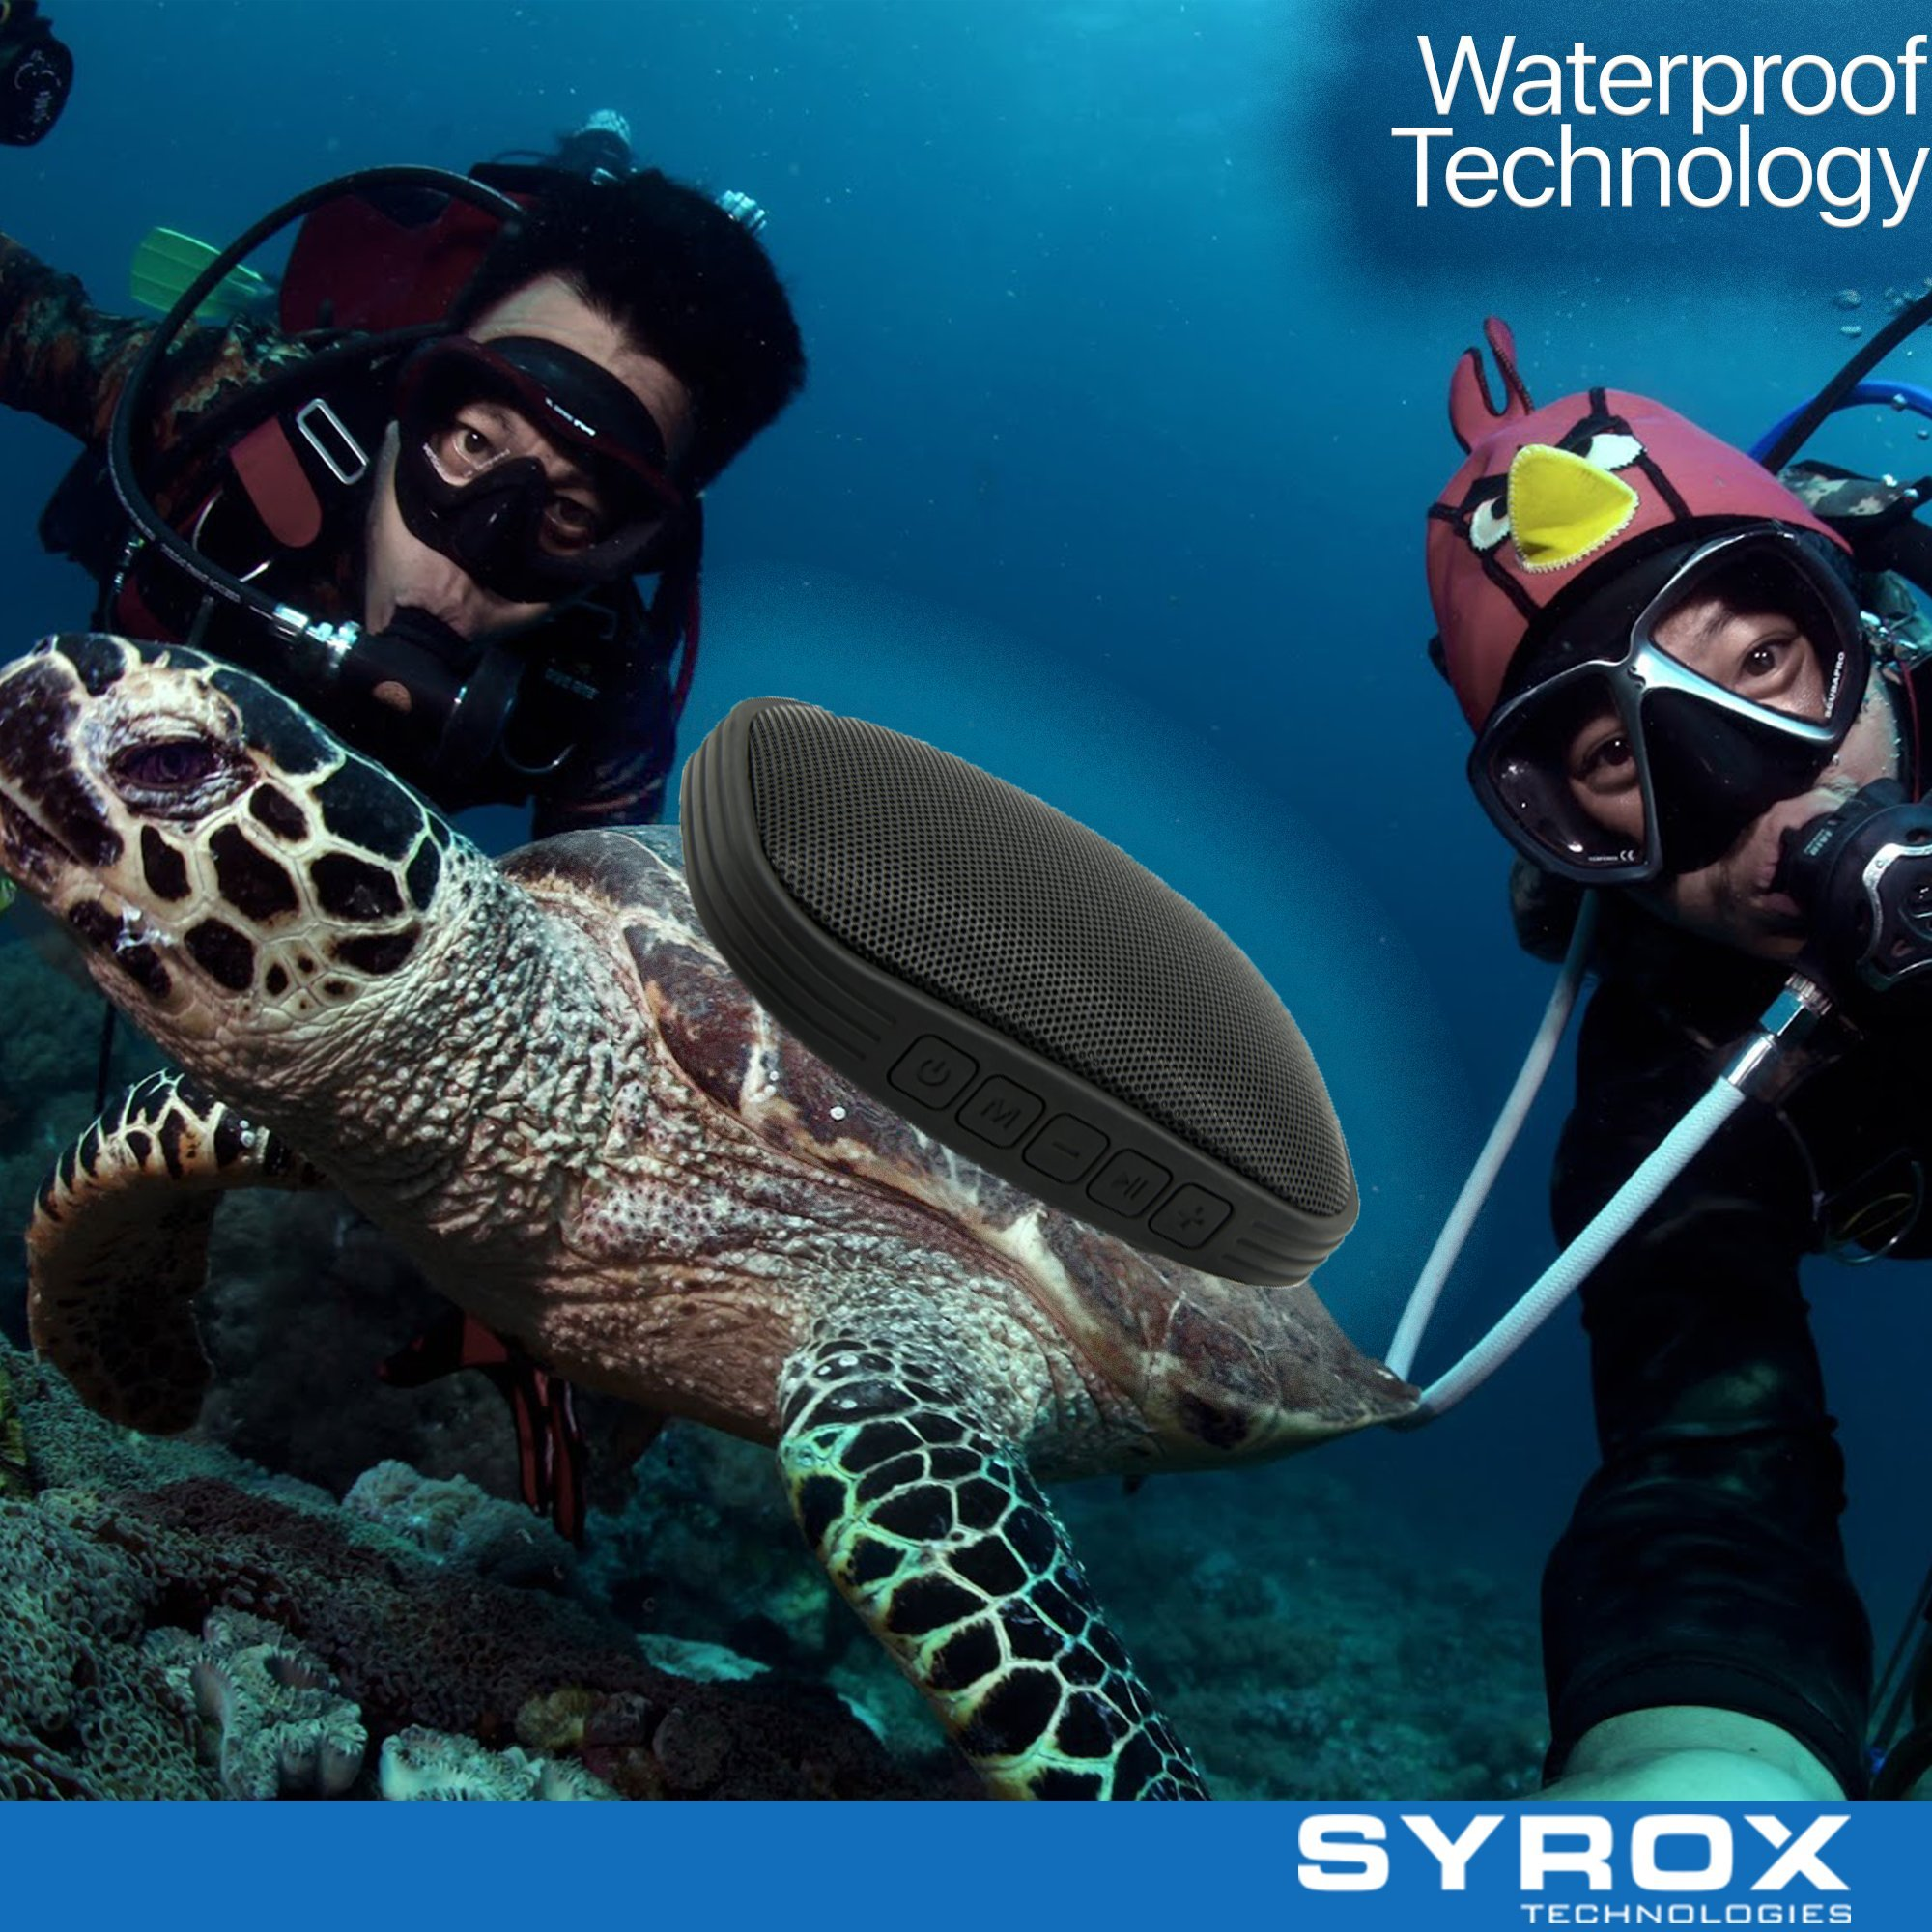 Bluetooth Speaker Waterproof - Black Portable Chargable SD Card AUX FM Radio Microphone Apple Iphone 4/5/6/7/8/X Samsung Galaxy Sony Xperia Xiaomi Asus LG G4 G5 G6 Nokia HTC BlackBerry Motorola Huawei by Syrox (Image #4)